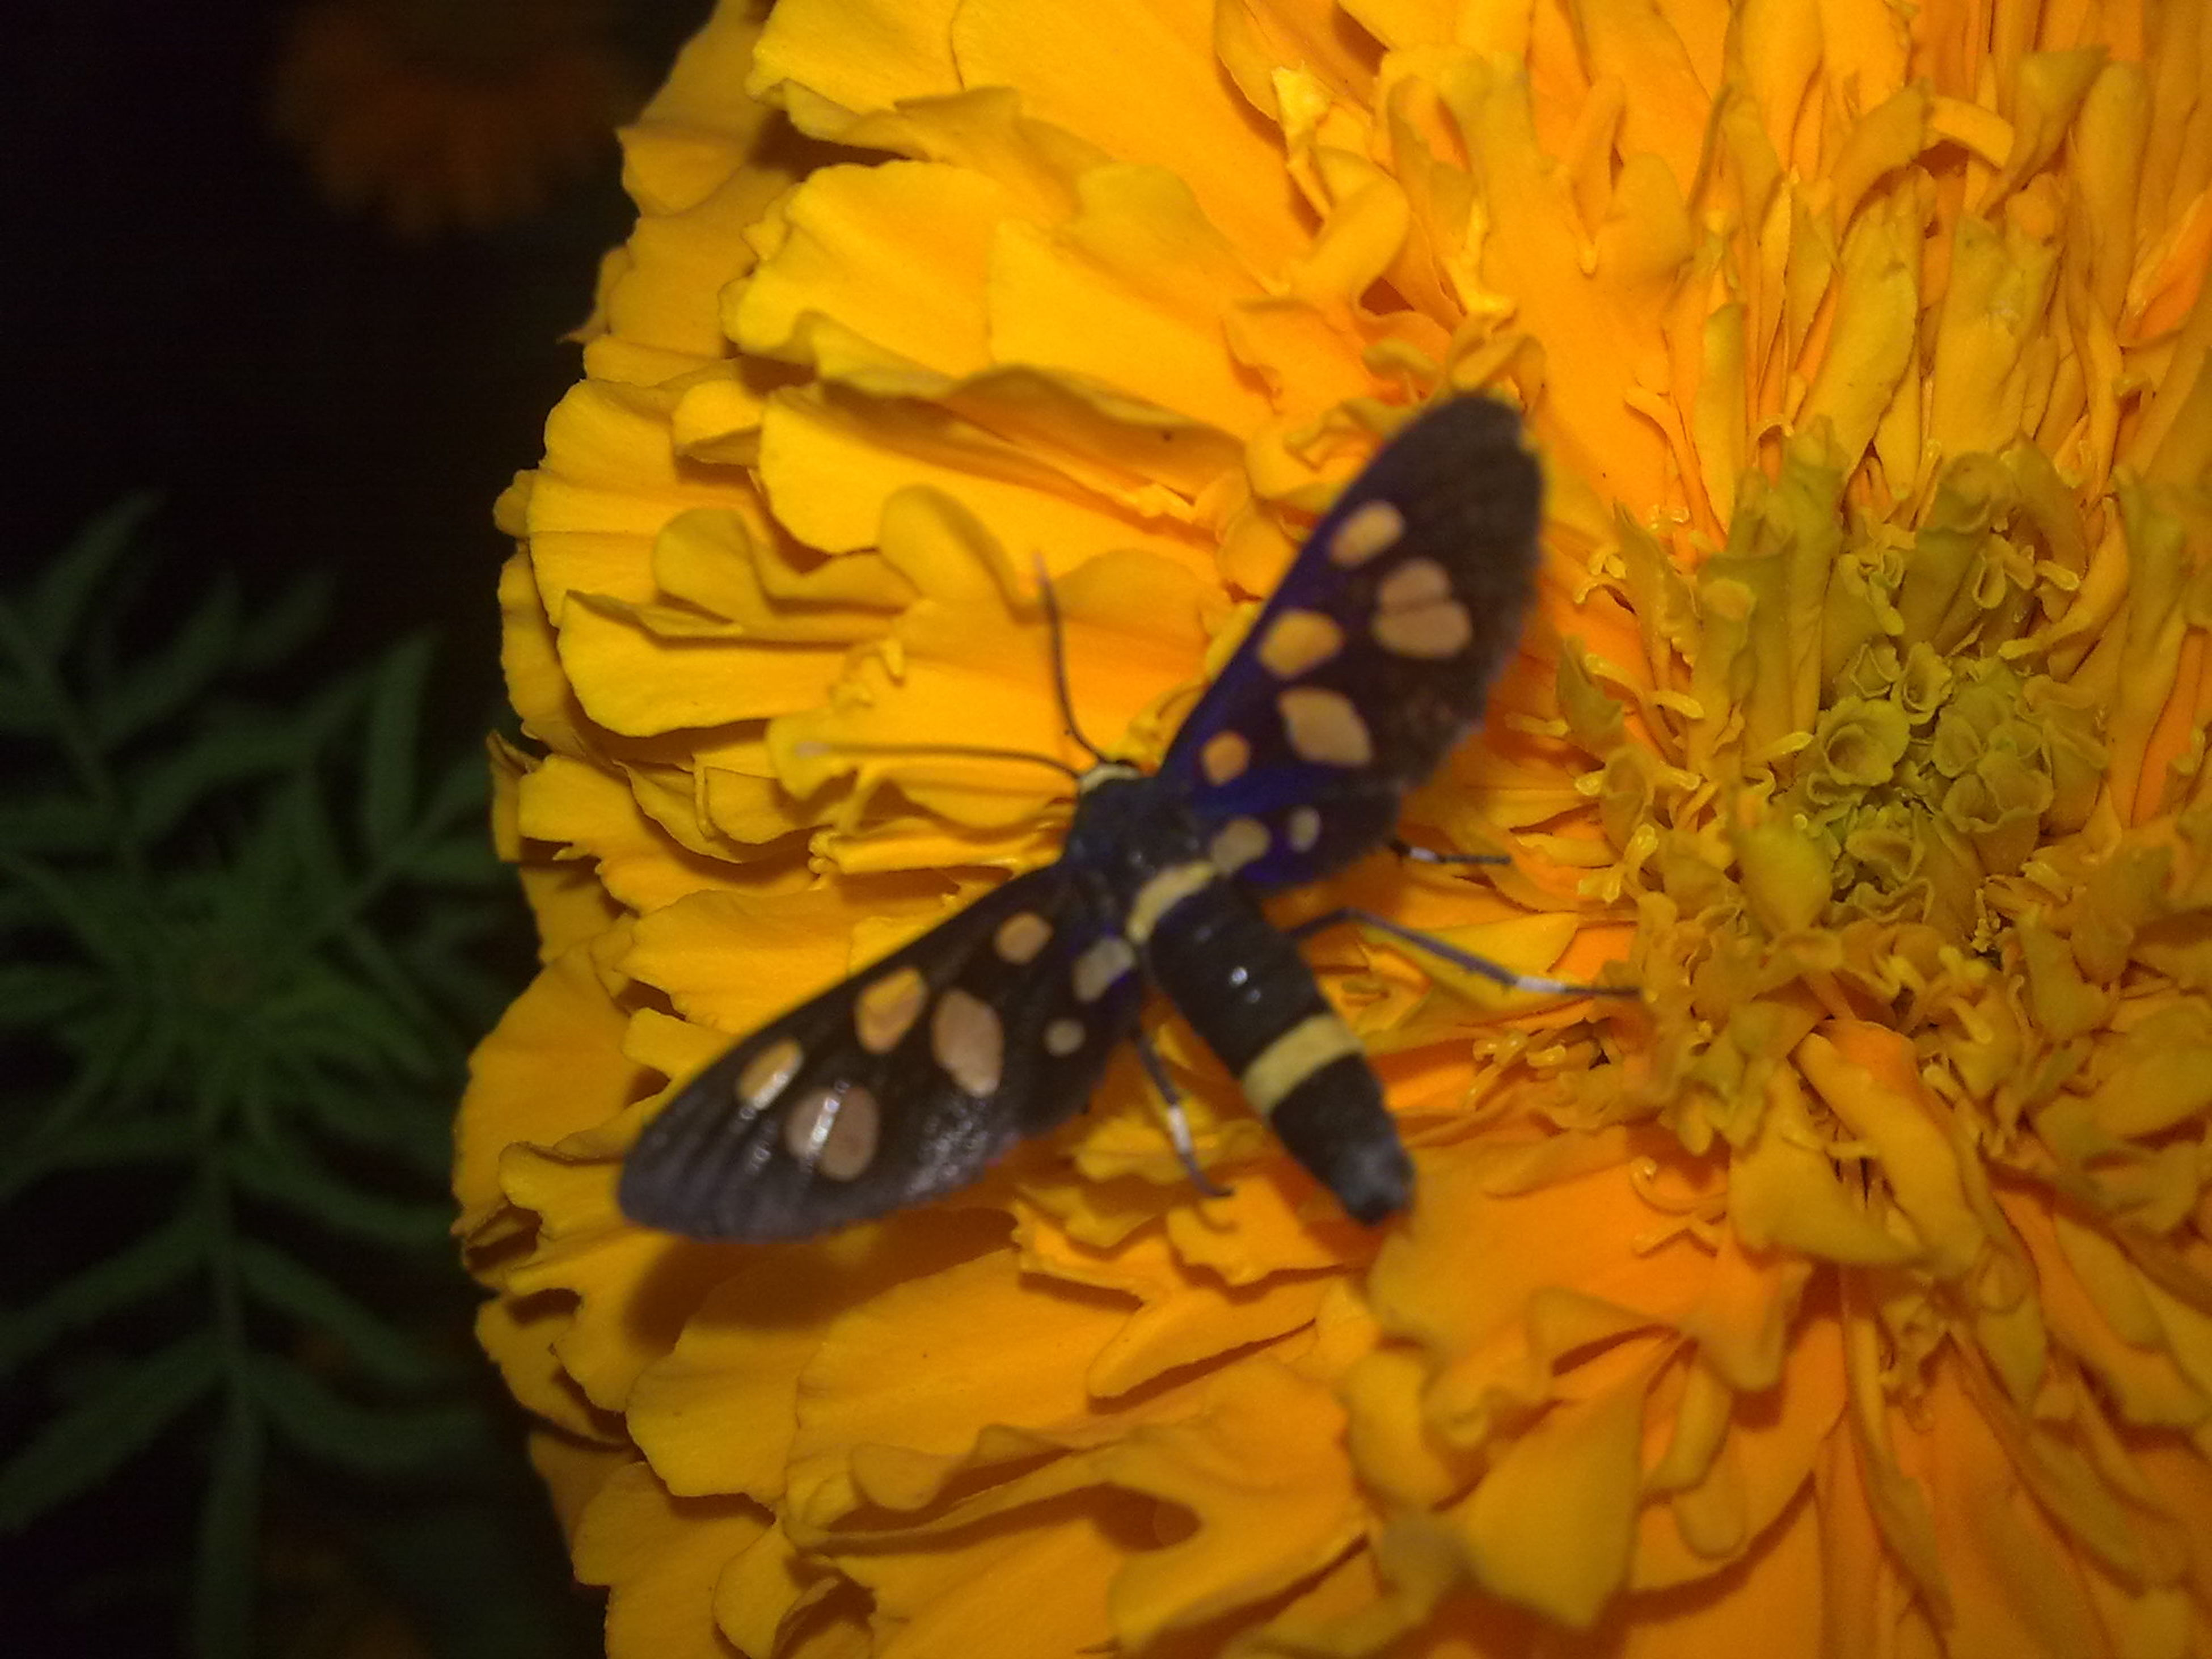 one animal, animal themes, animals in the wild, wildlife, flower, insect, yellow, pollination, petal, butterfly - insect, beauty in nature, fragility, nature, close-up, butterfly, freshness, symbiotic relationship, plant, growth, flower head